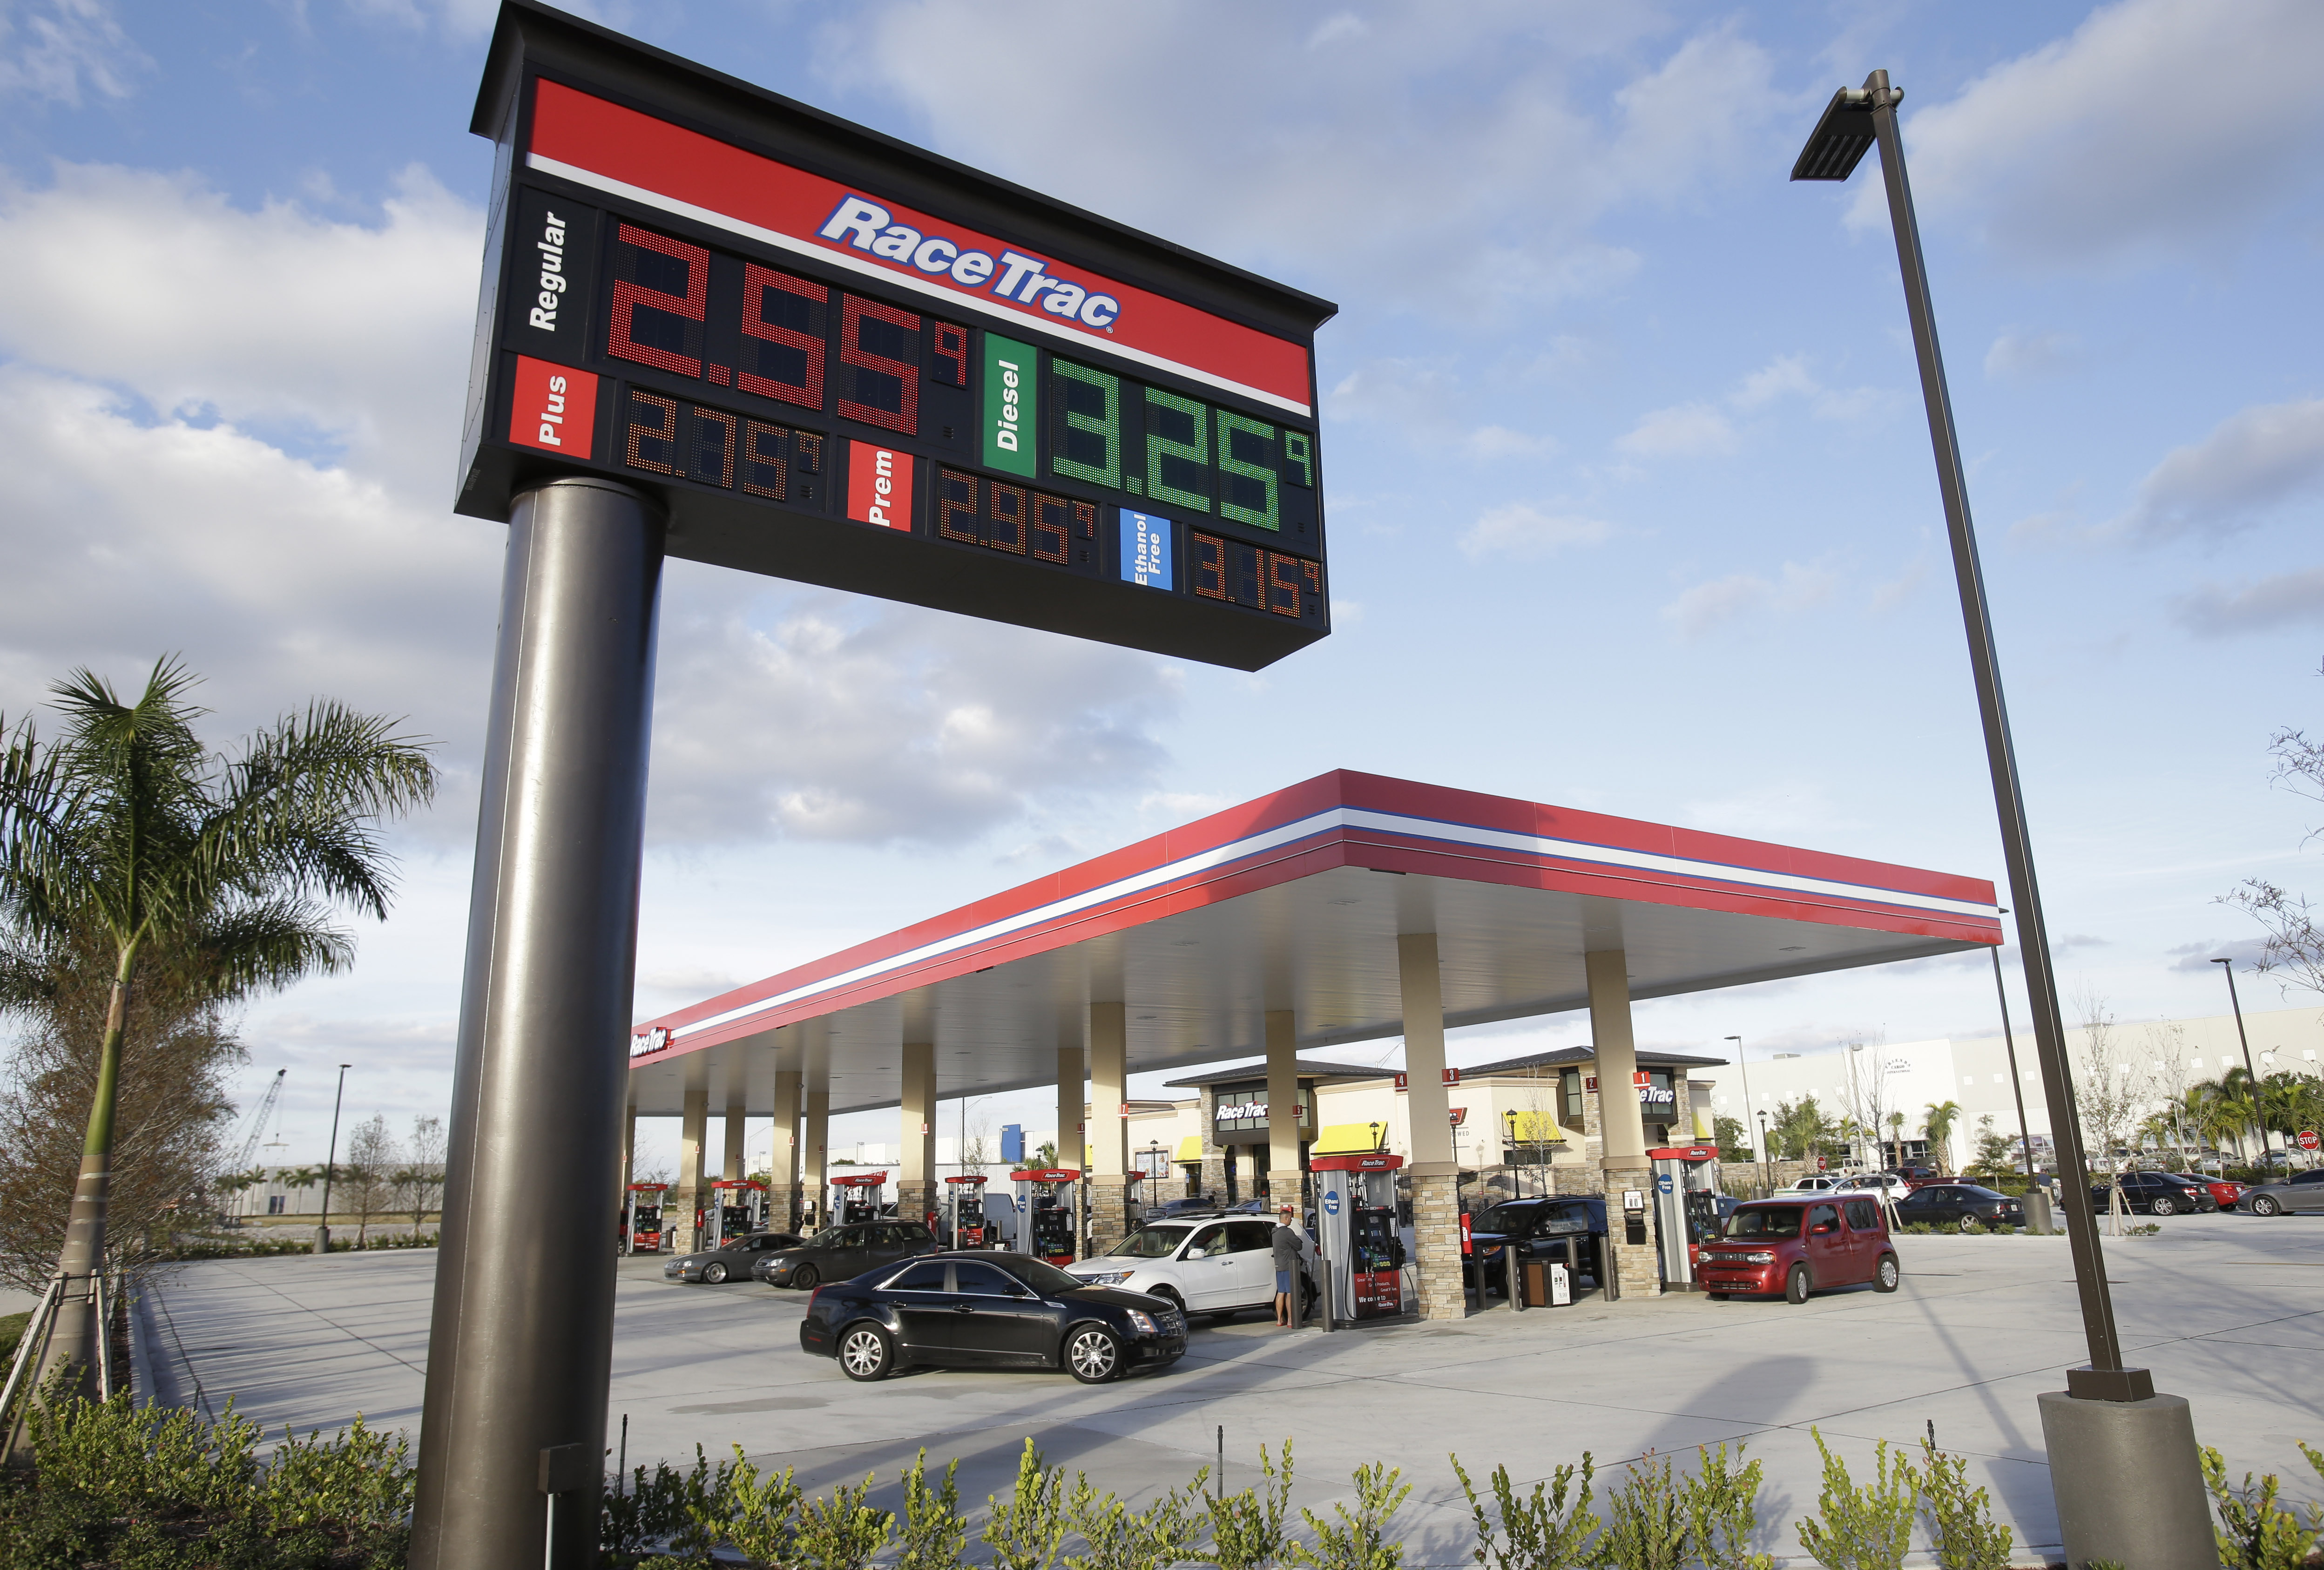 Low Gas Prices >> Gas stations cheer lower gas prices along with drivers - The Blade